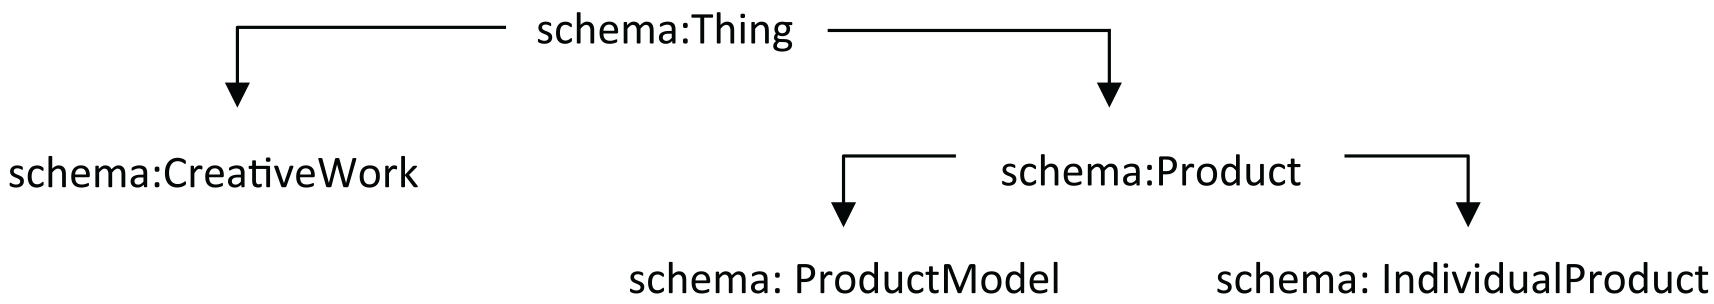 Creative Works and the Product hierarchy in Schema.org.